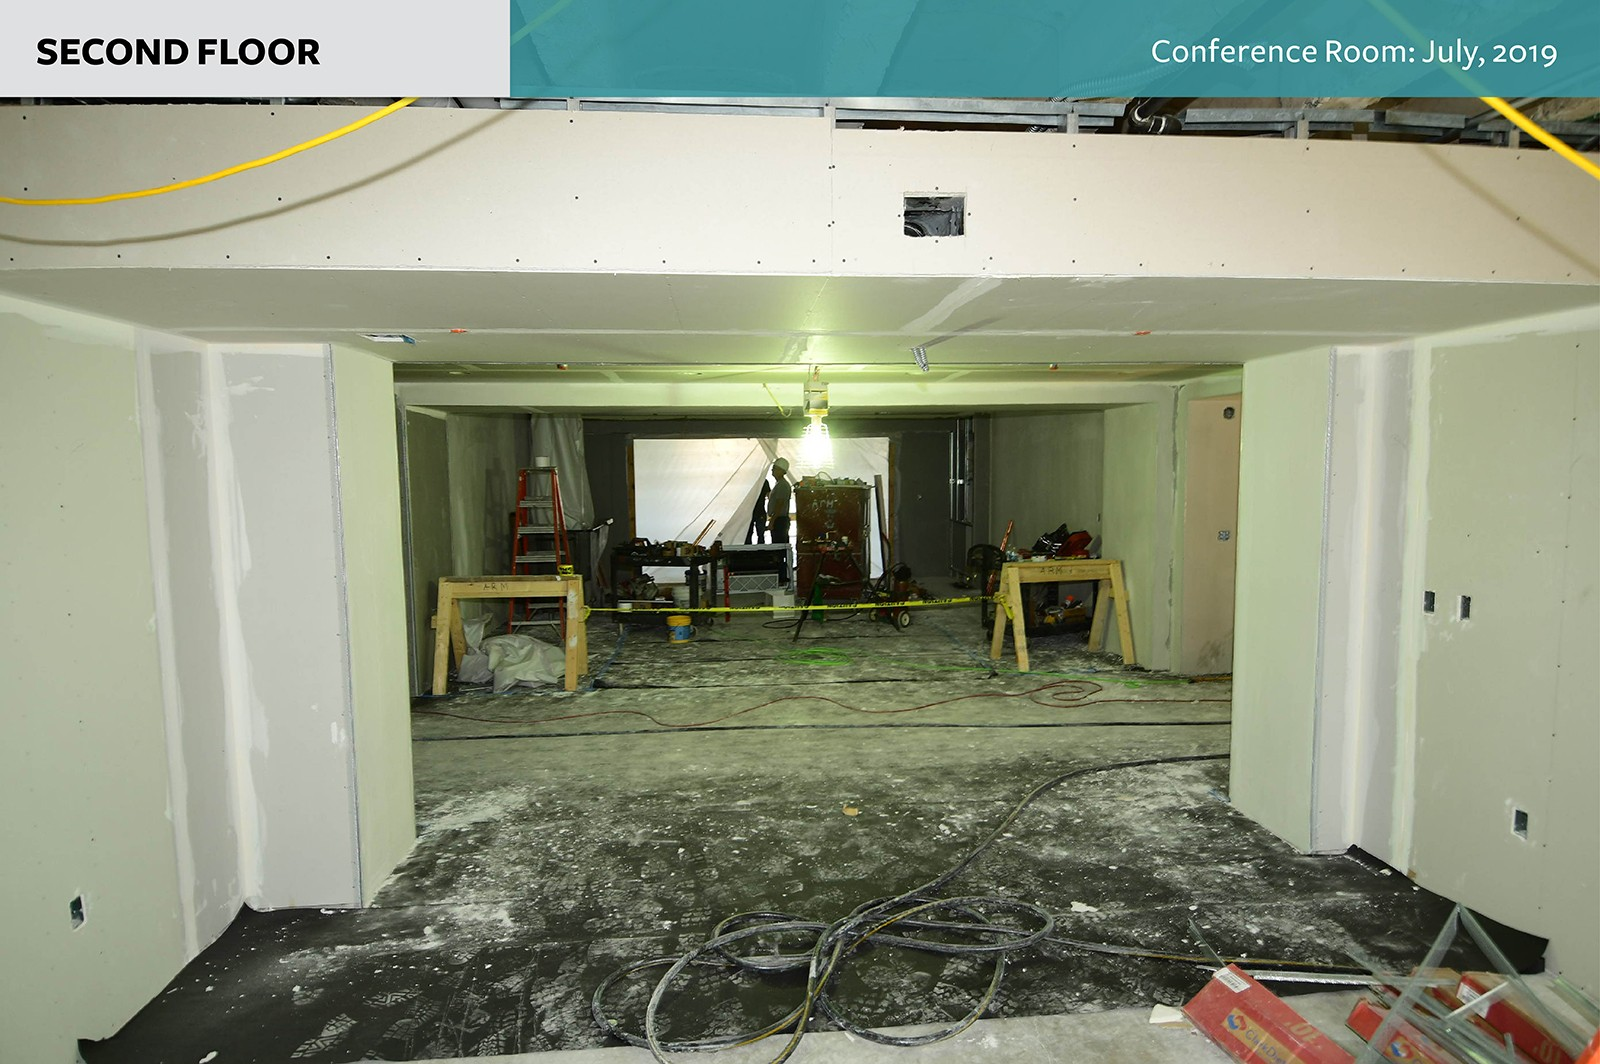 Second floor: Conference Room as of July, 2019